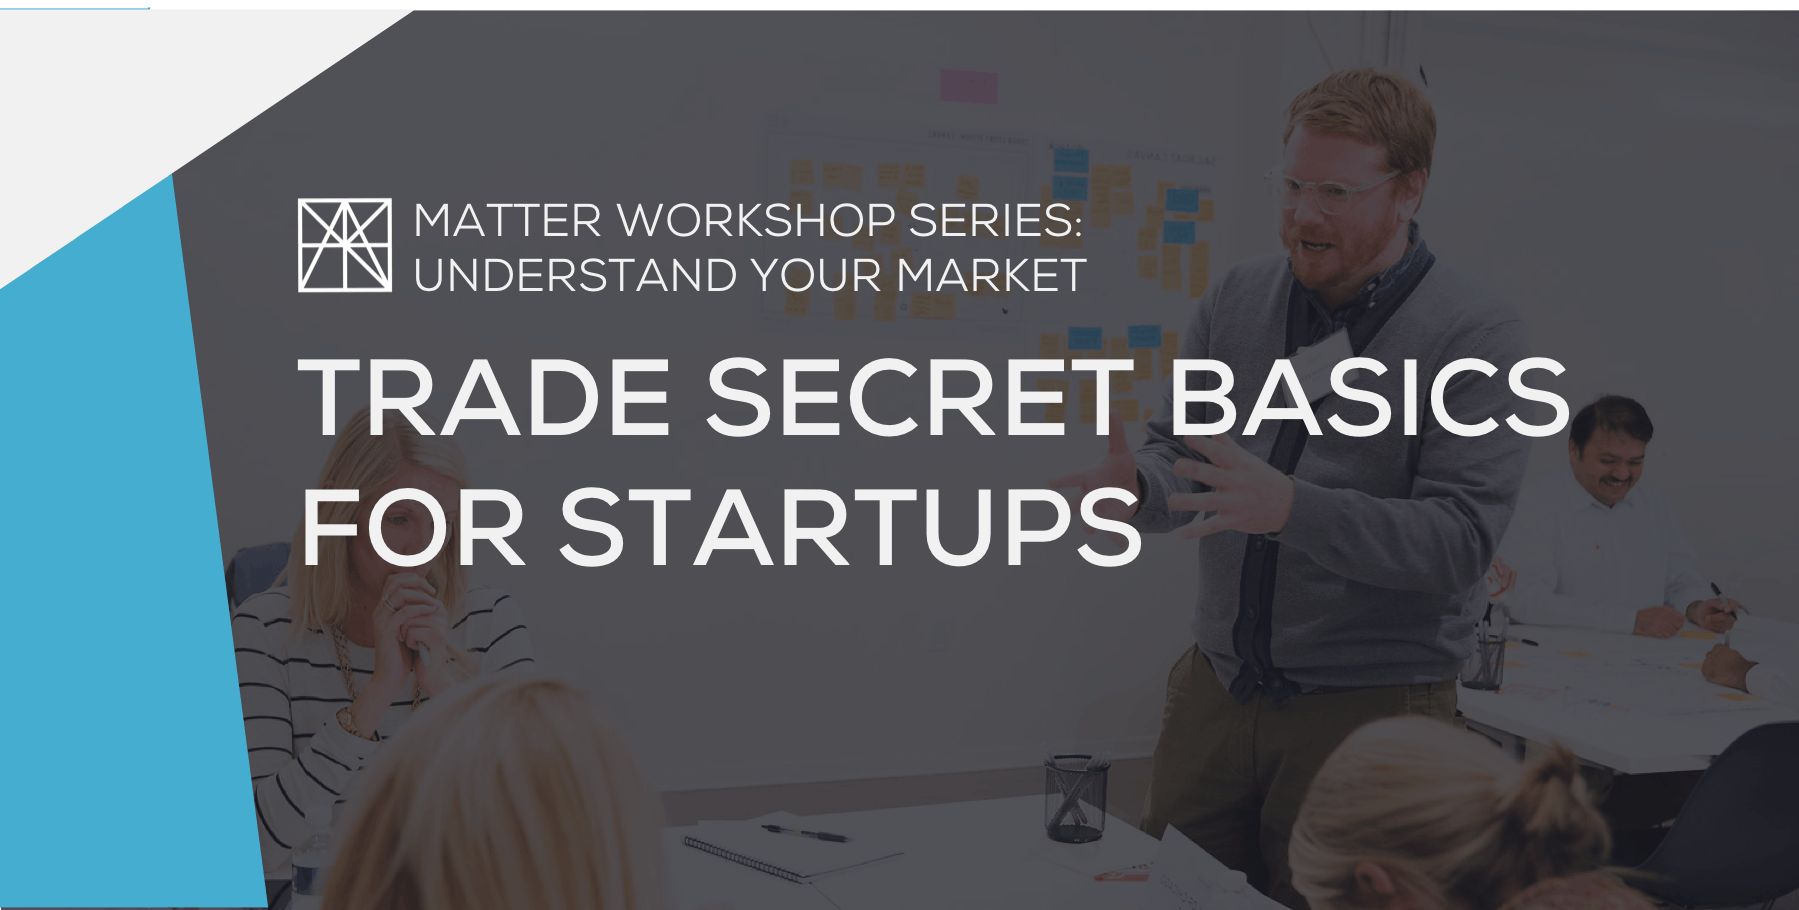 MATTER Workshop: Trade Secret Basics for Star